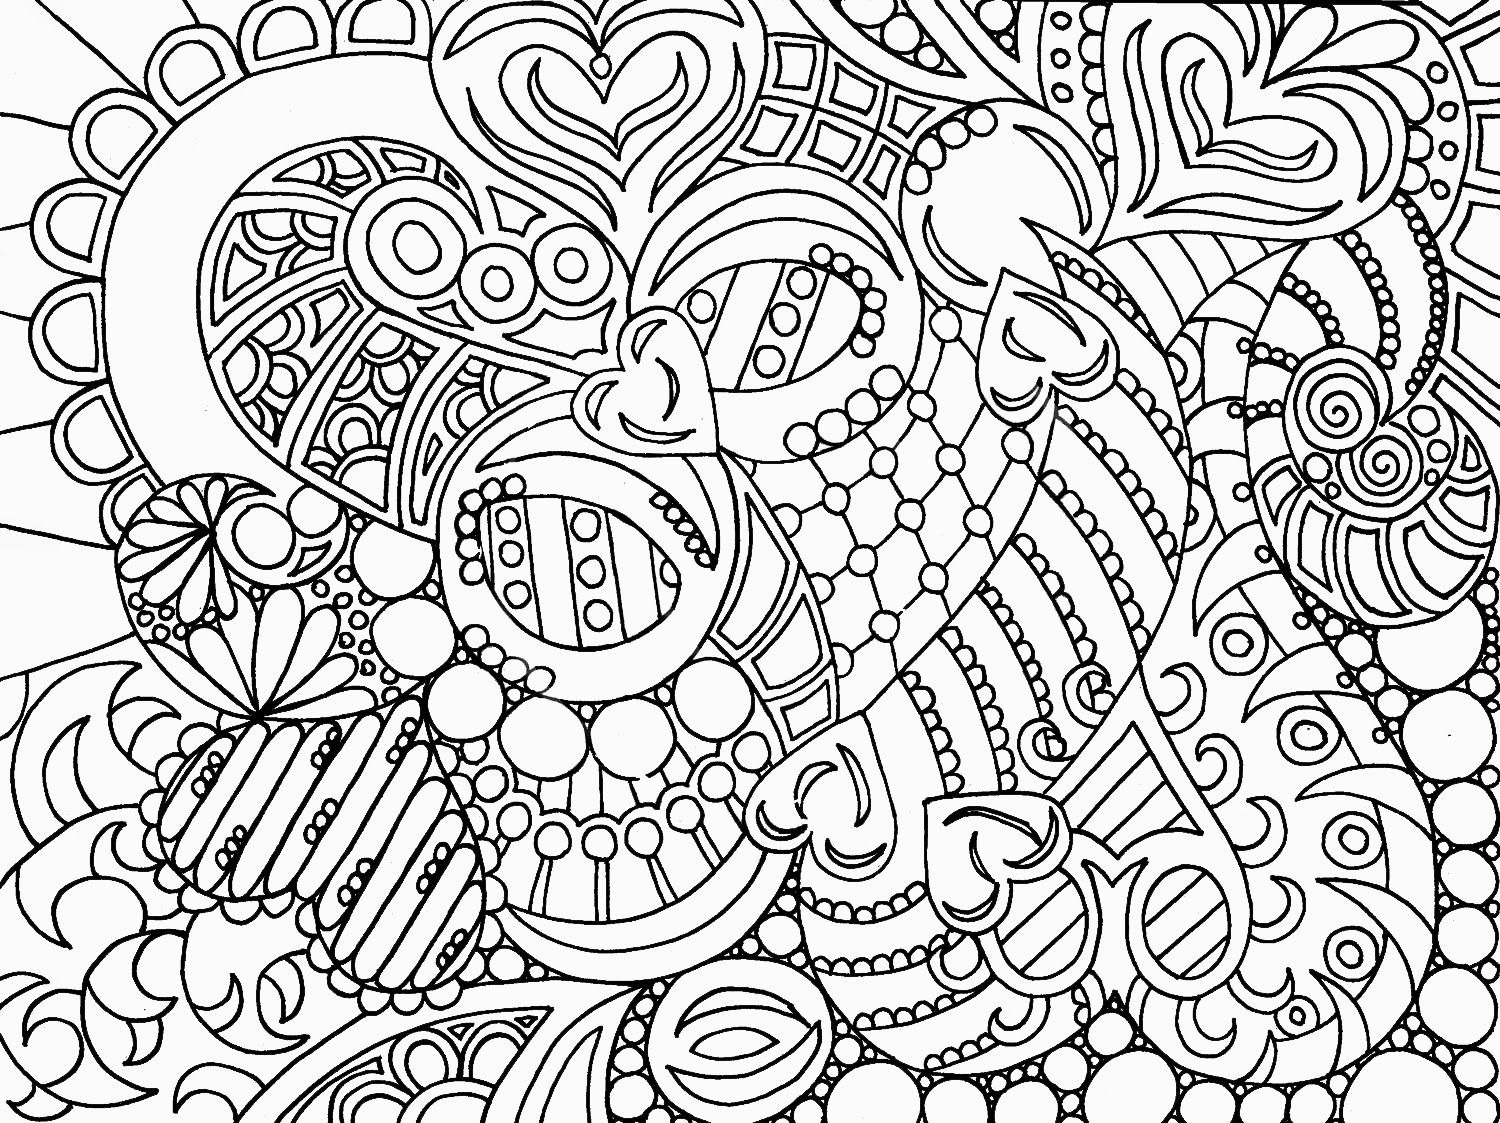 abstract coloring pages you can get abstract art coloring pages - Abstract Coloring Pages Printable